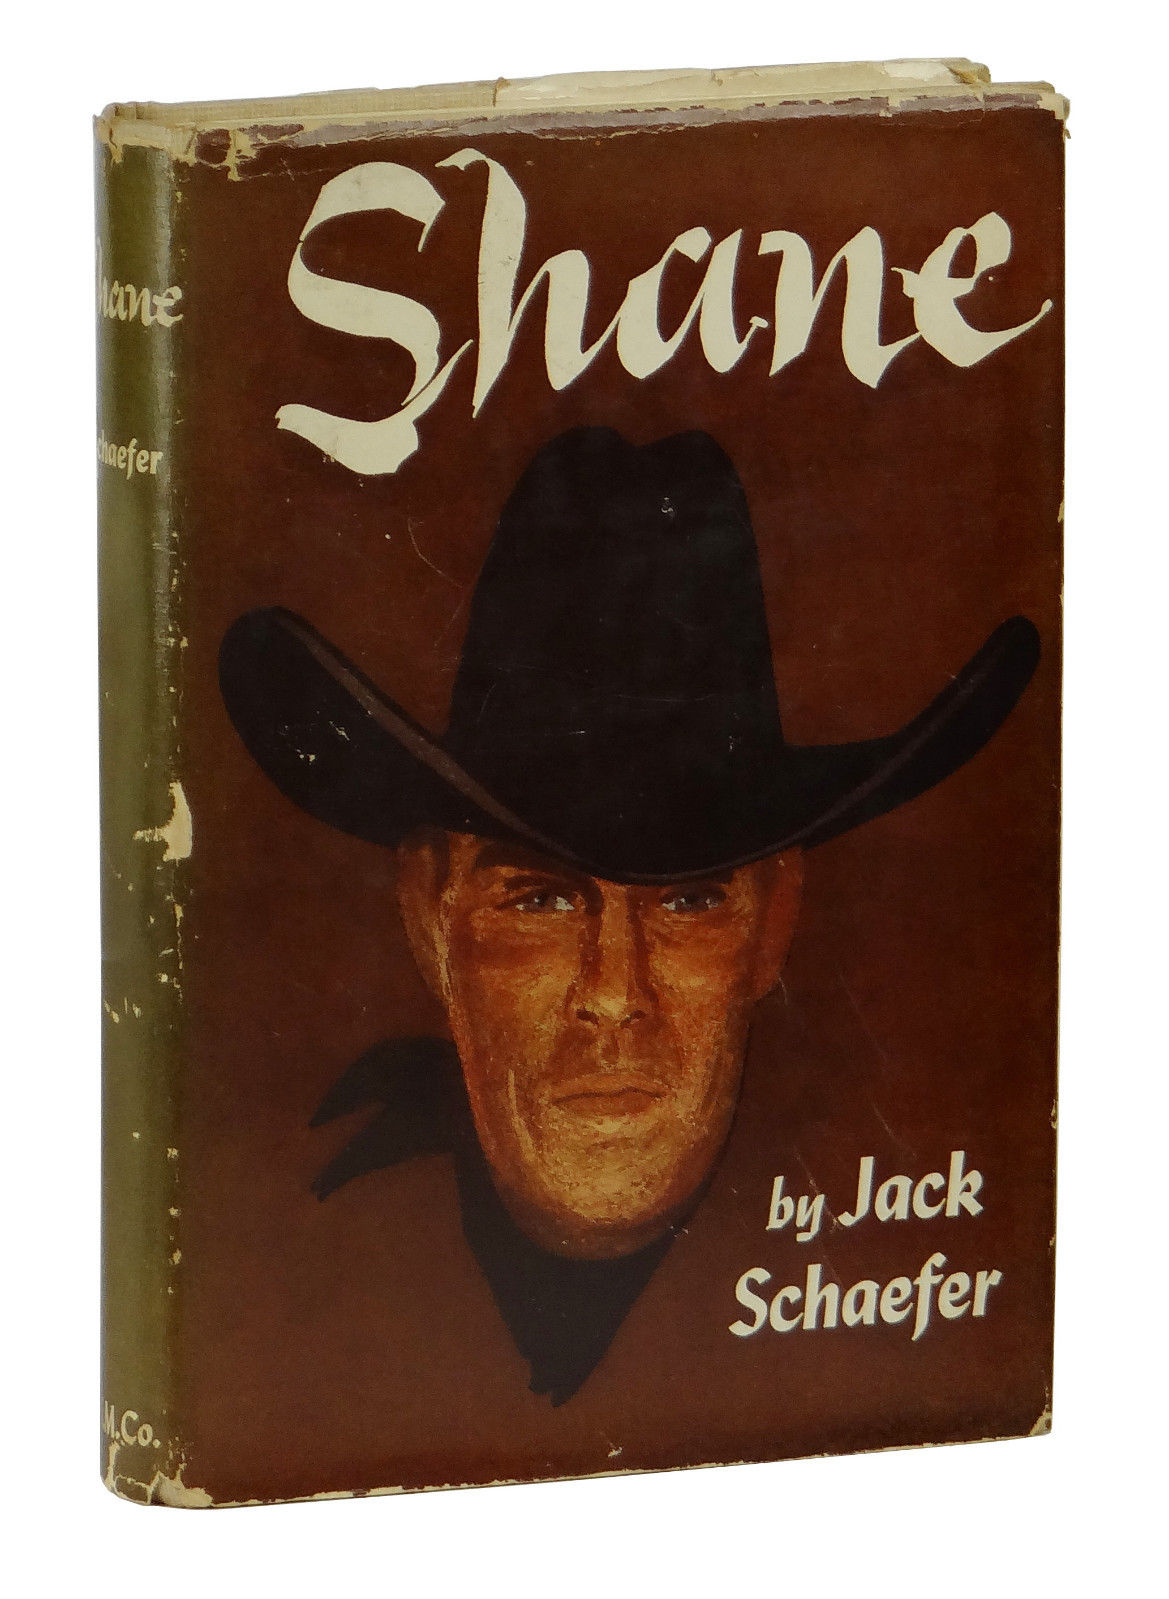 western struggles in shane a novel by jack schaefer Shane by jack schaefer 20 question trivia quiz, authored by bloodwolf03 this quiz is on the book shane by jack schaefer average score for this quiz is 13 / 20.